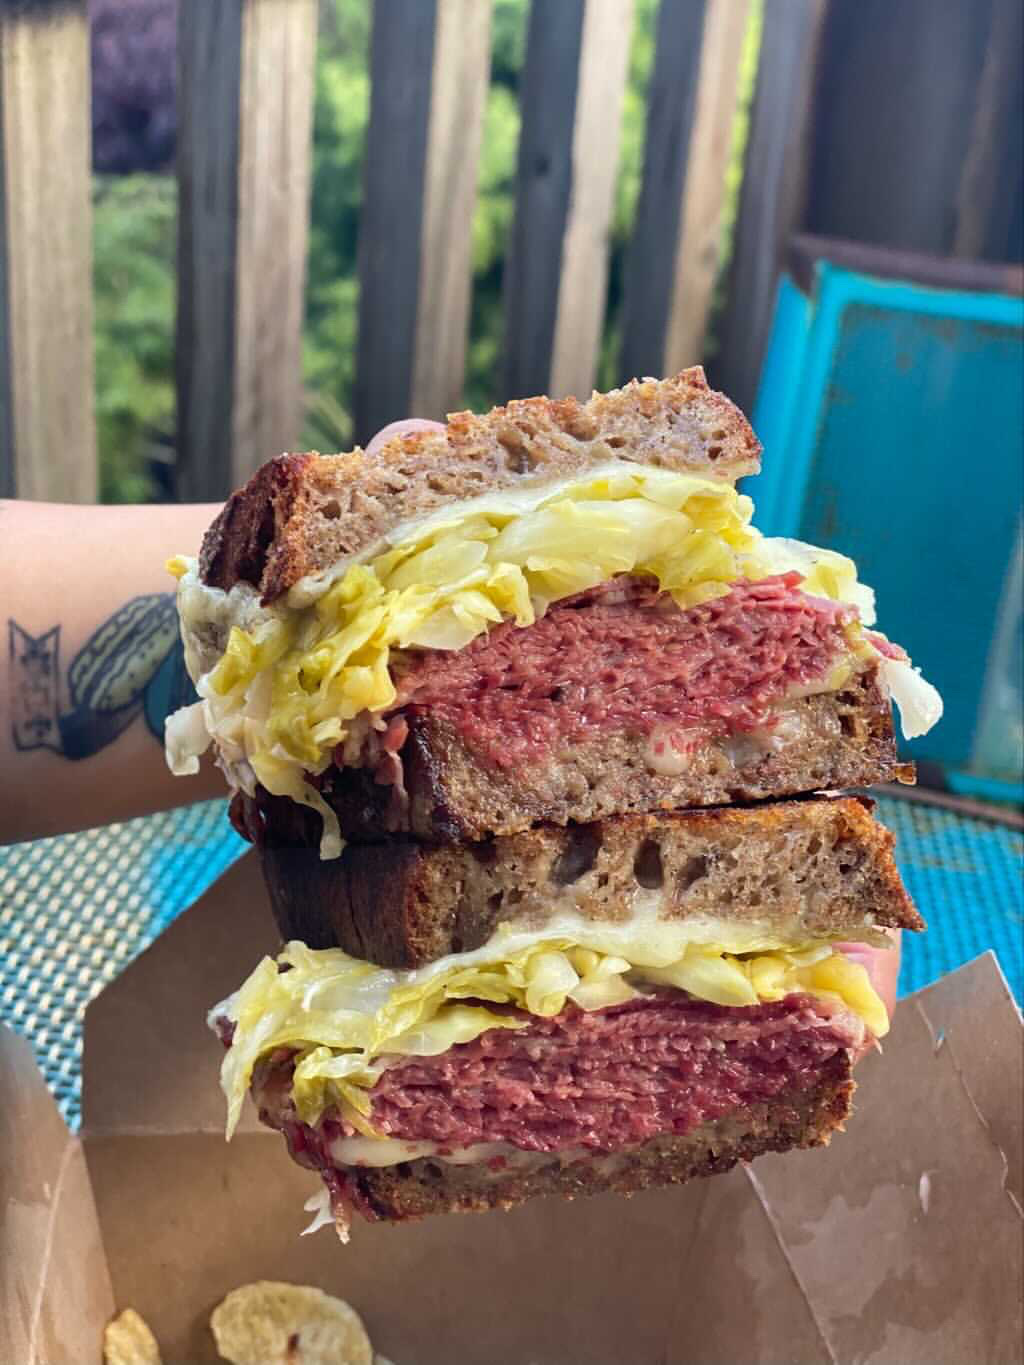 A Reuben sandwich cut in half with a layer of sauerkraut on thick slices of pumpernickel.